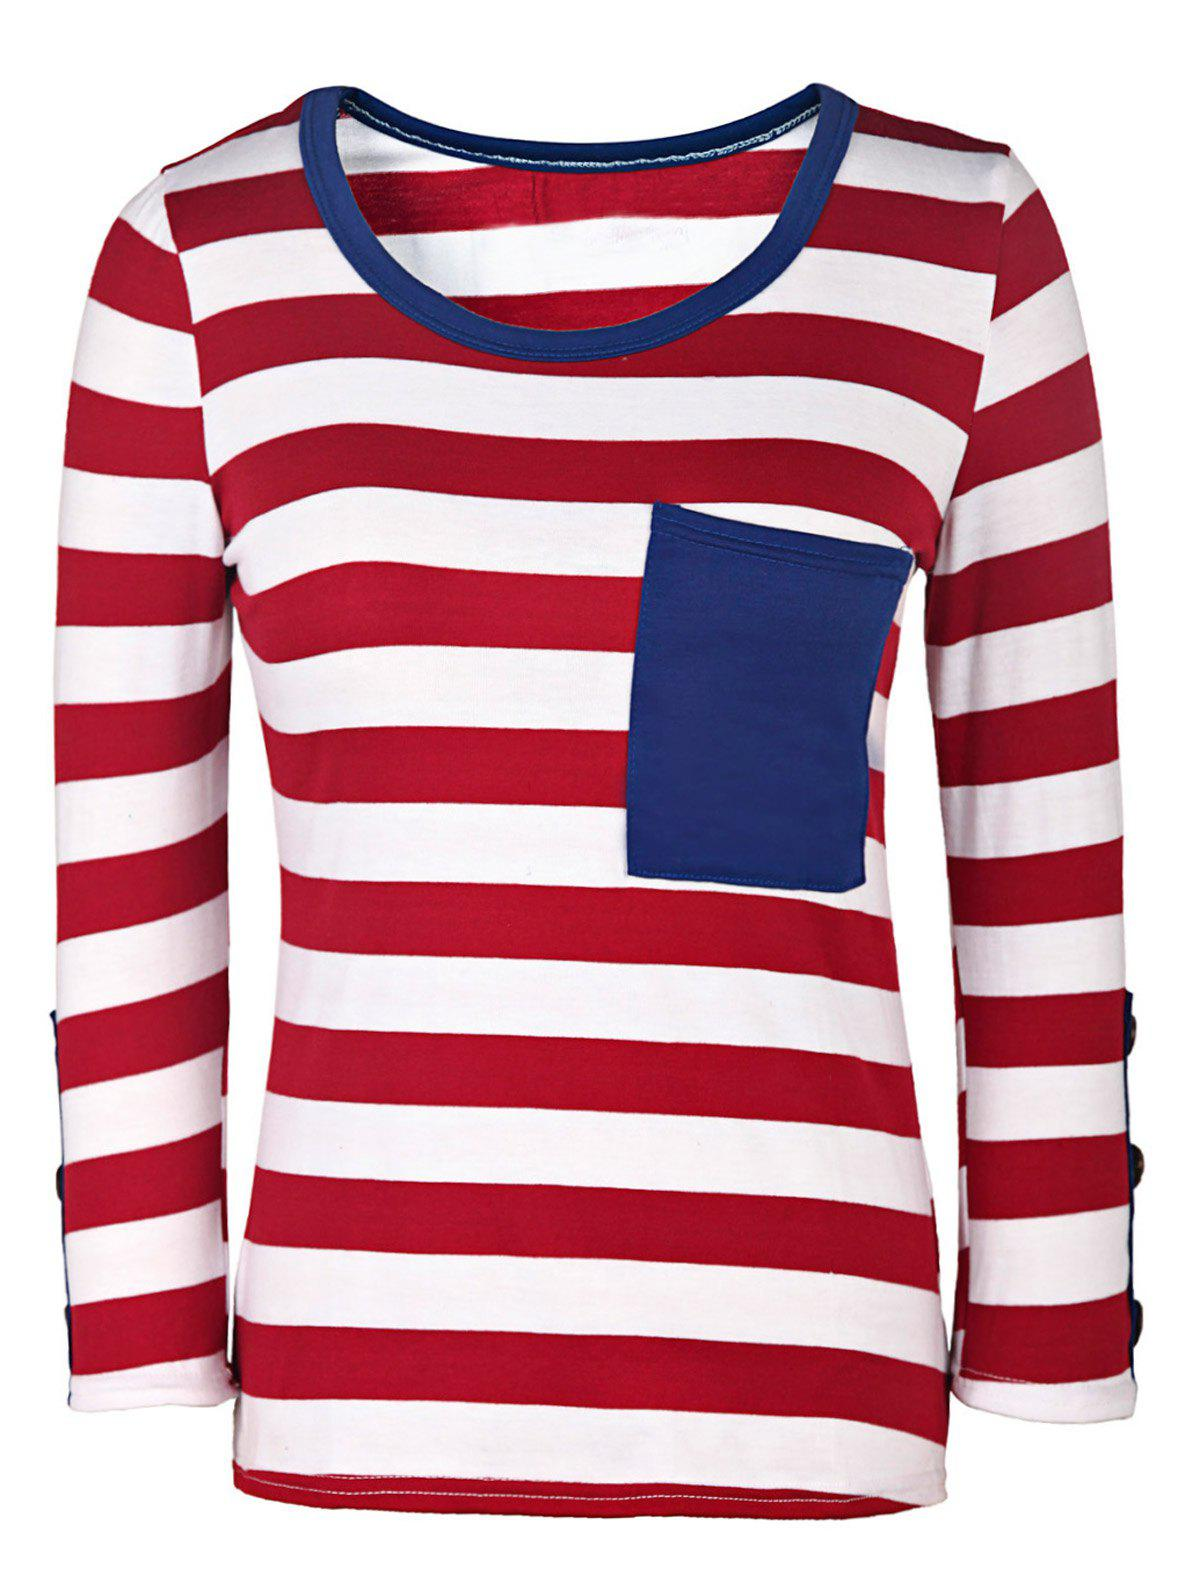 Casual Style 3/4 Sleeve Scoop Neck Buttoned Striped Women's T-Shirt - RED/WHITE M